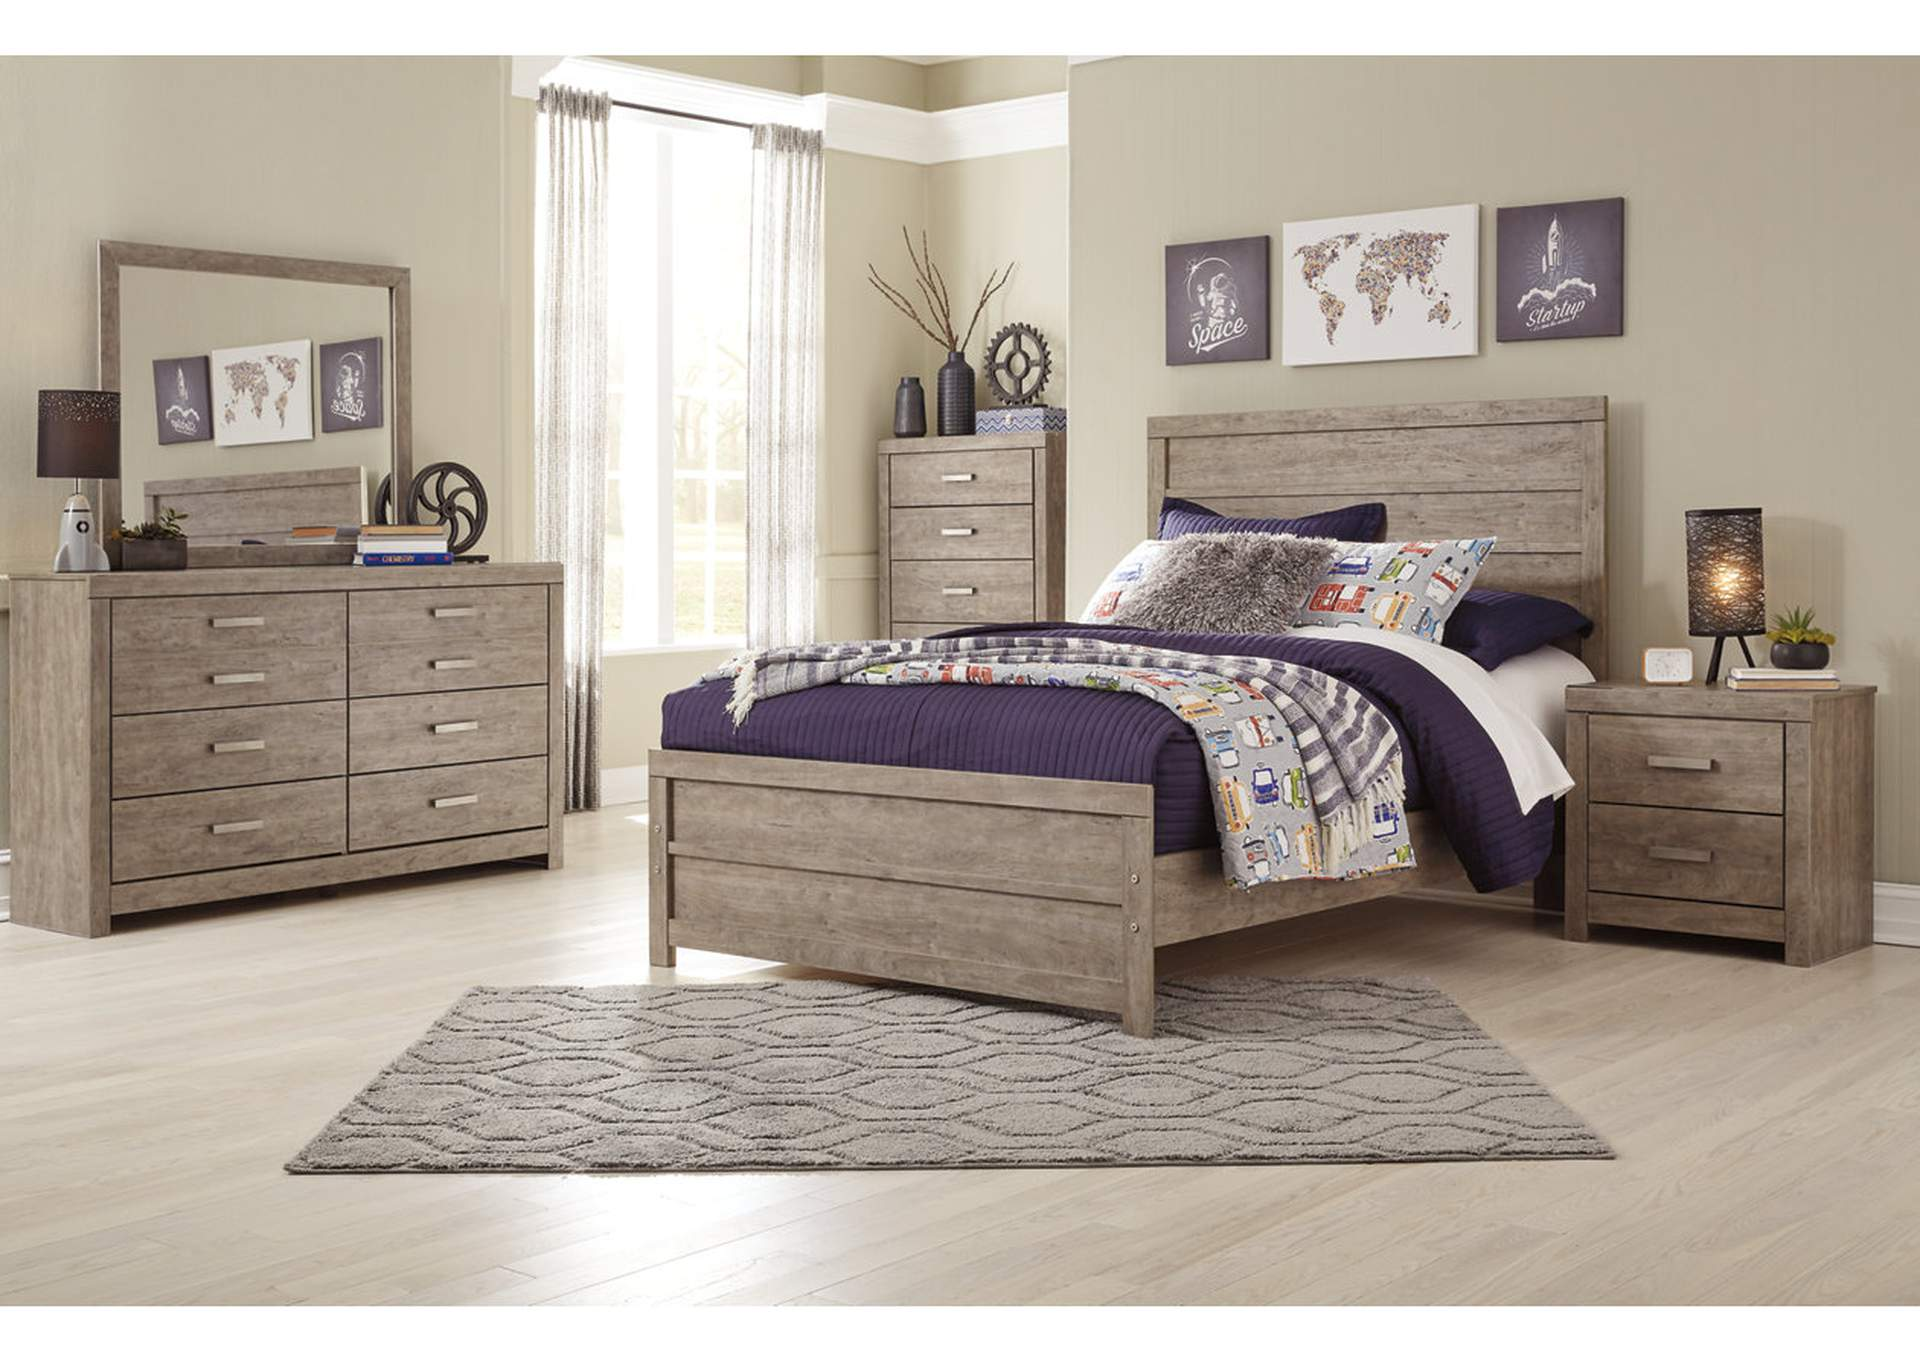 Culverbach Full Panel Bed w/Dresser and Mirror,Signature Design By Ashley